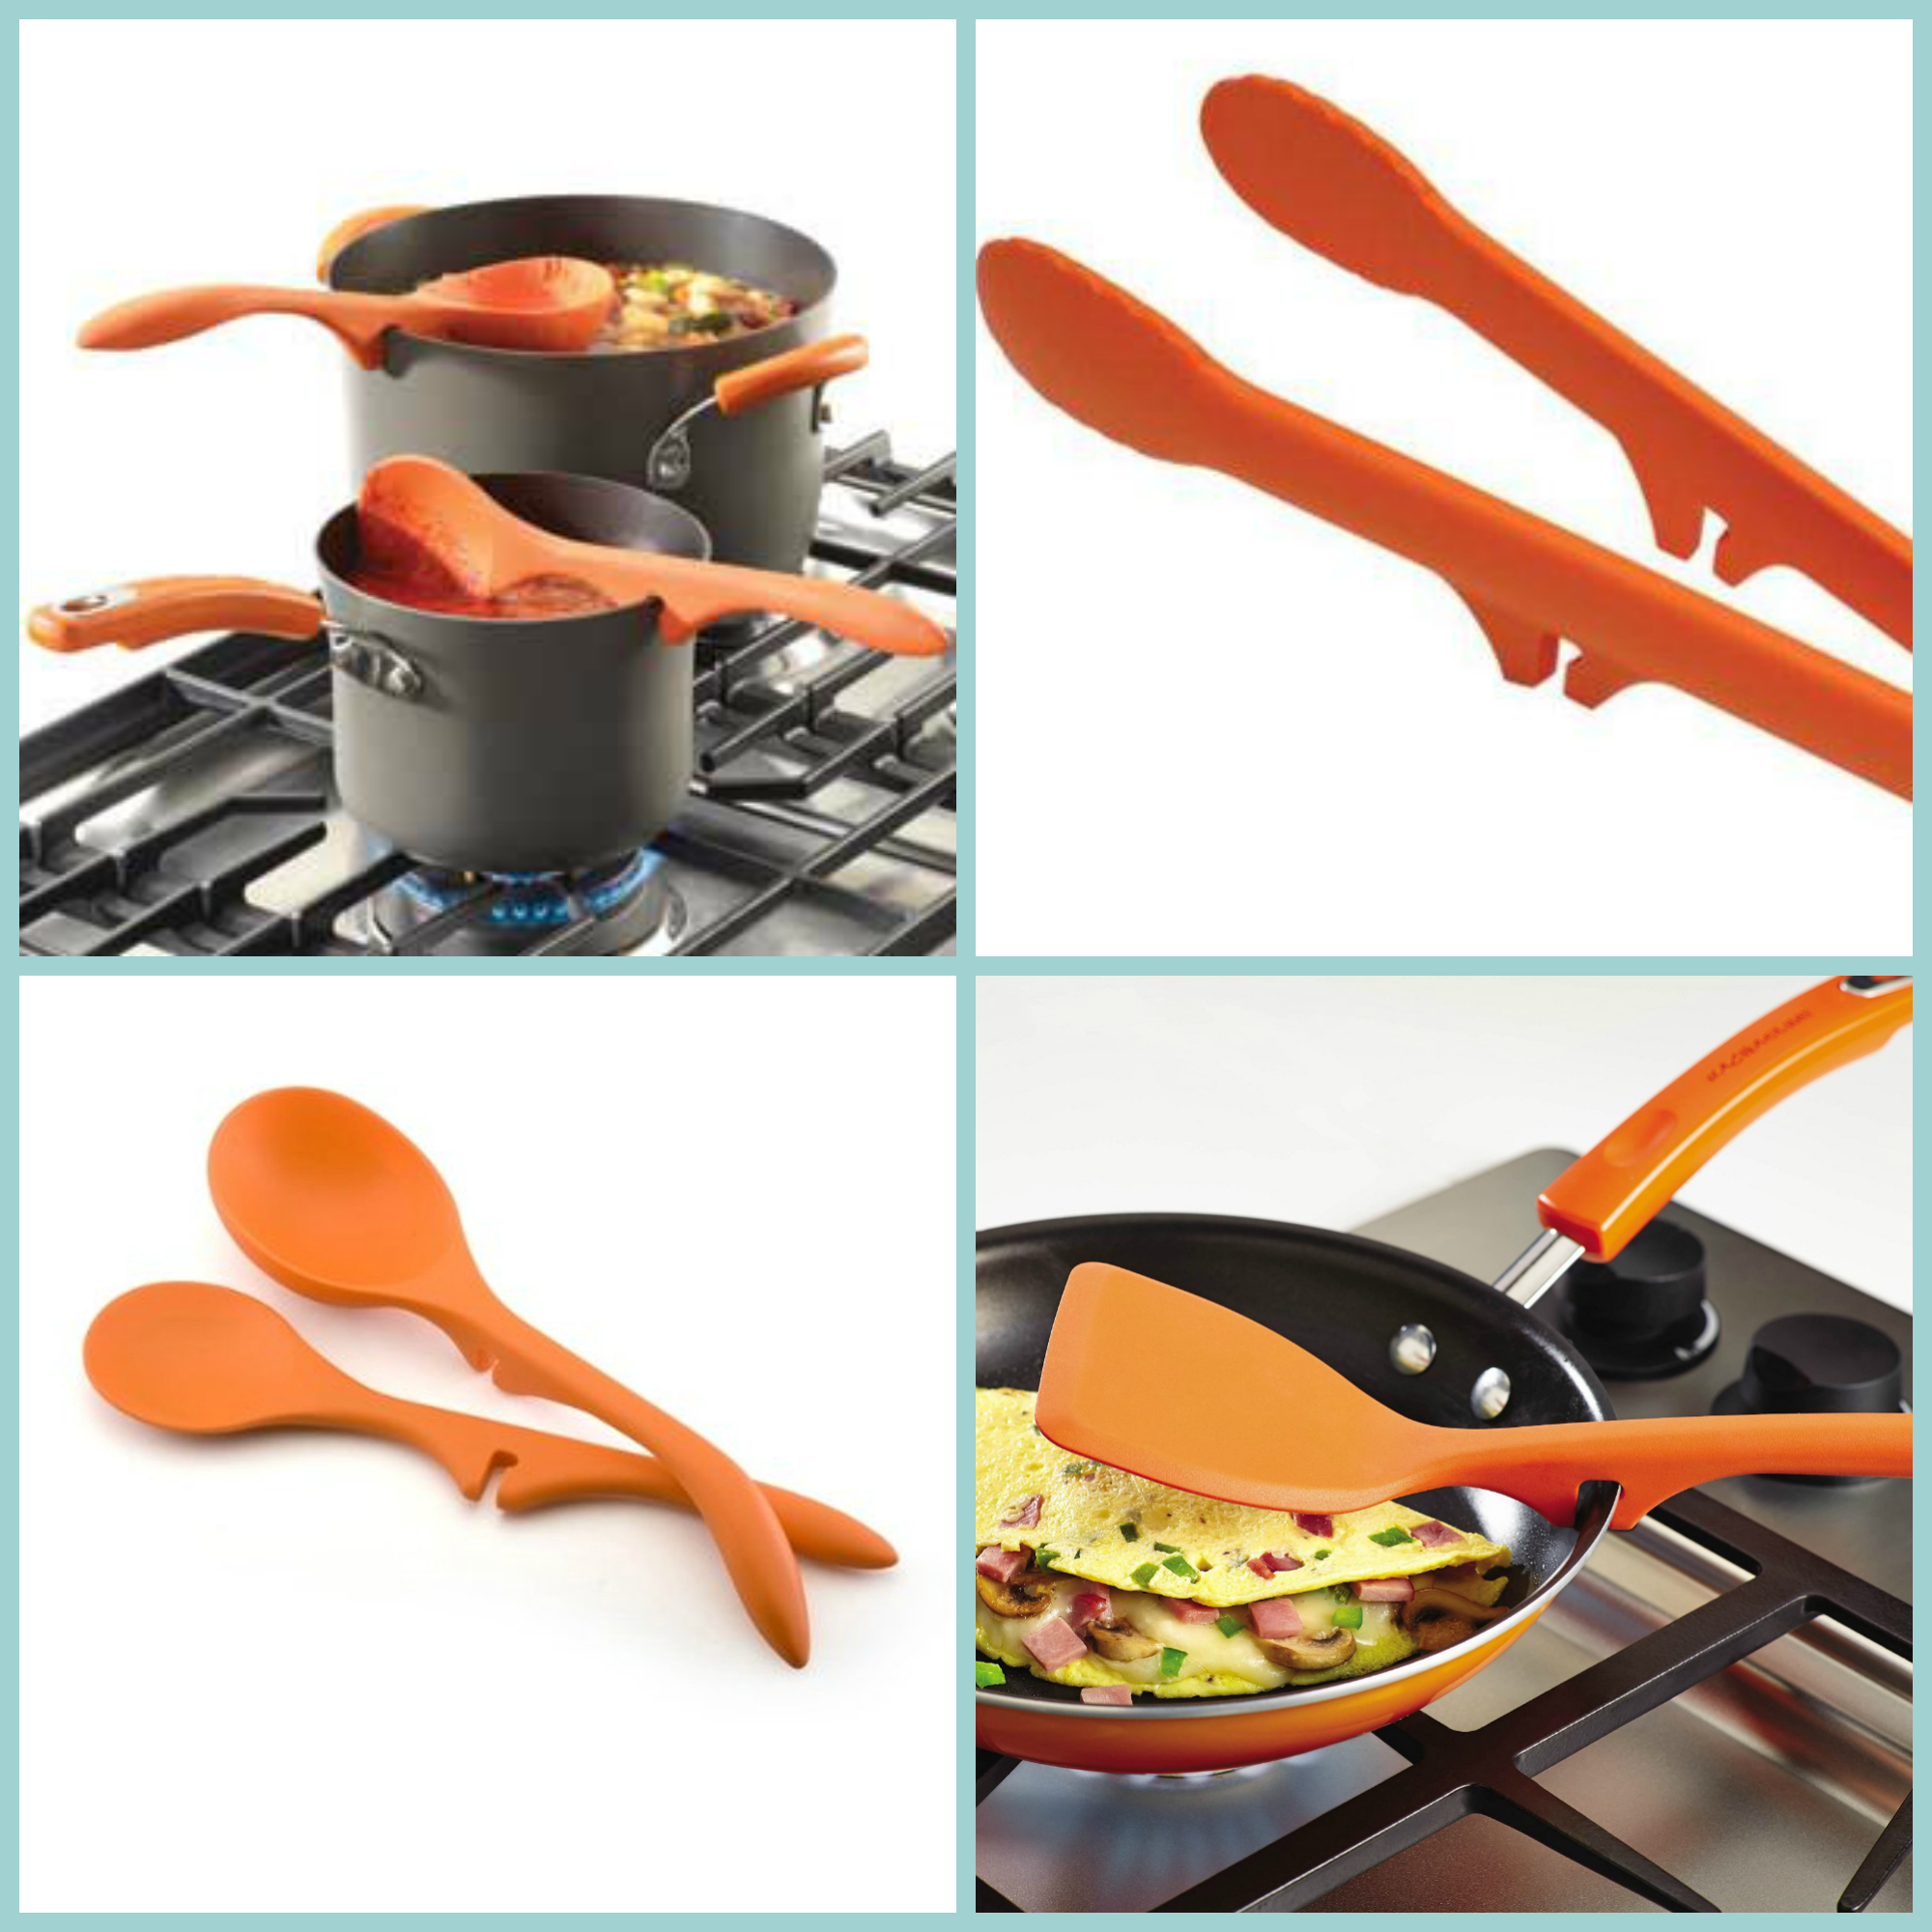 Rachael Ray Cookware Utensils Lazy Spoon Lazy Ladle Set 2